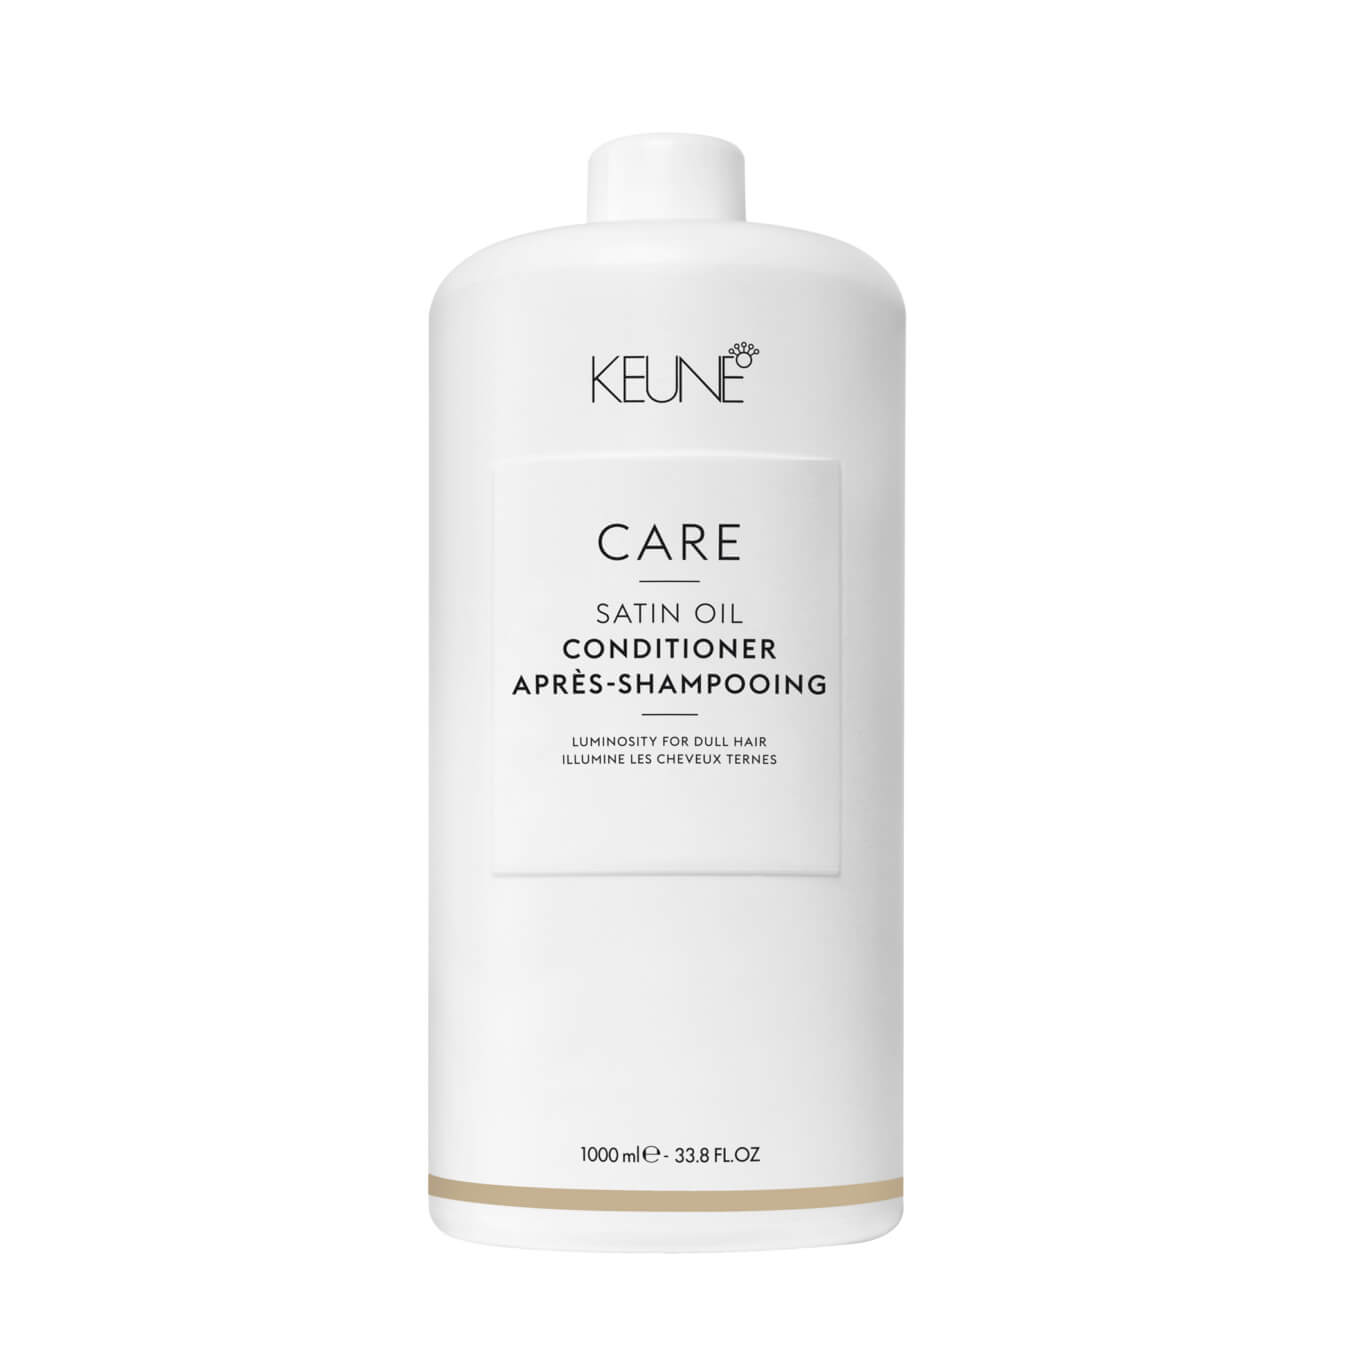 Koop Keune Care Satin Oil Conditioner 1000ml